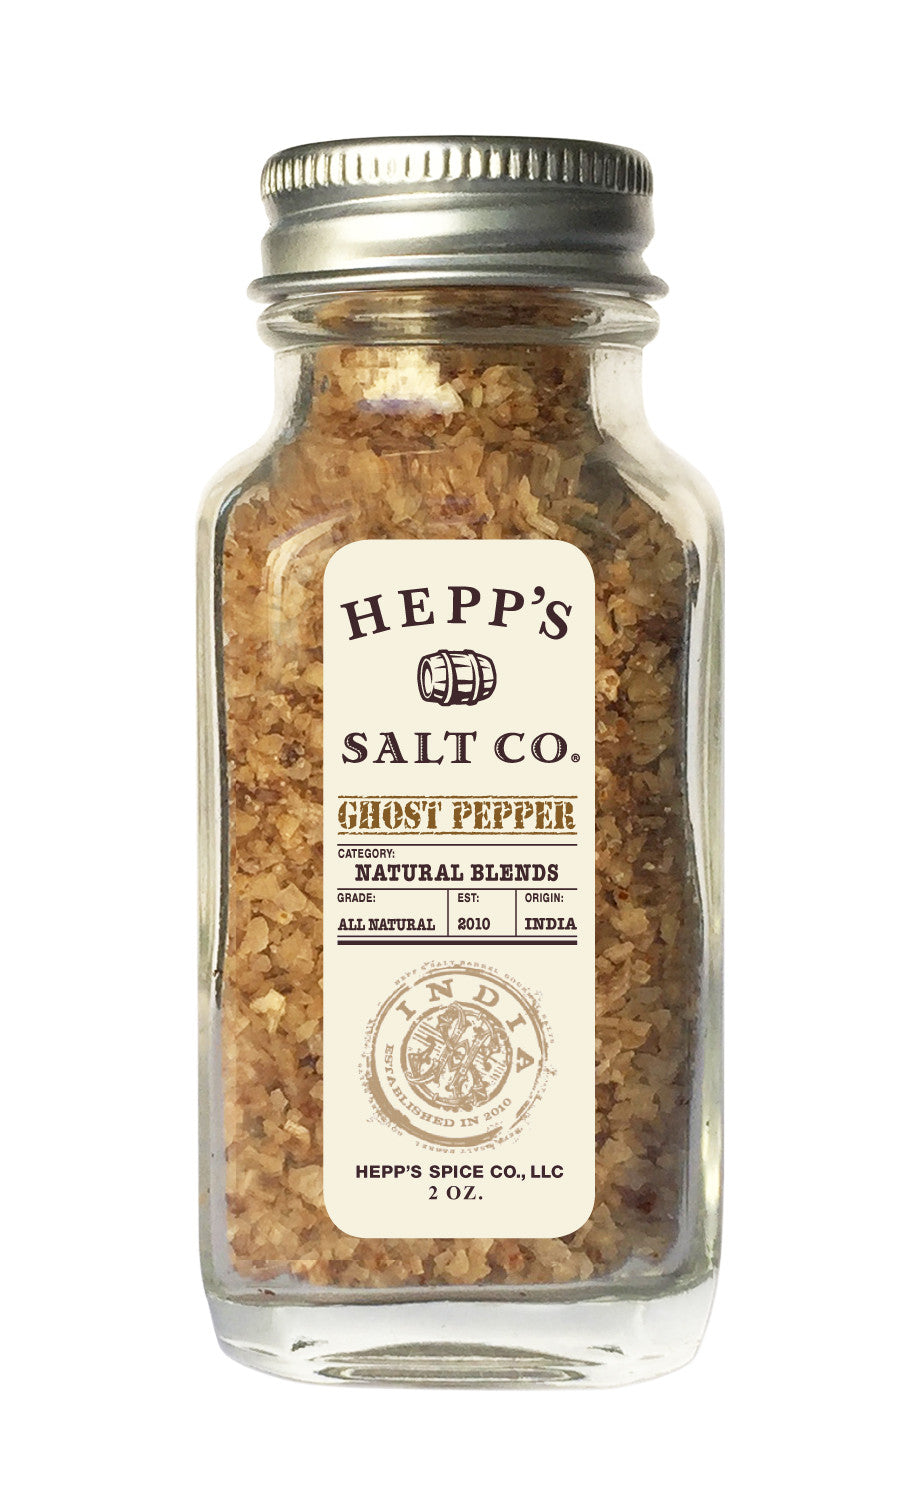 Ghost Pepper Sea Salt - HEPPS SALT CO.